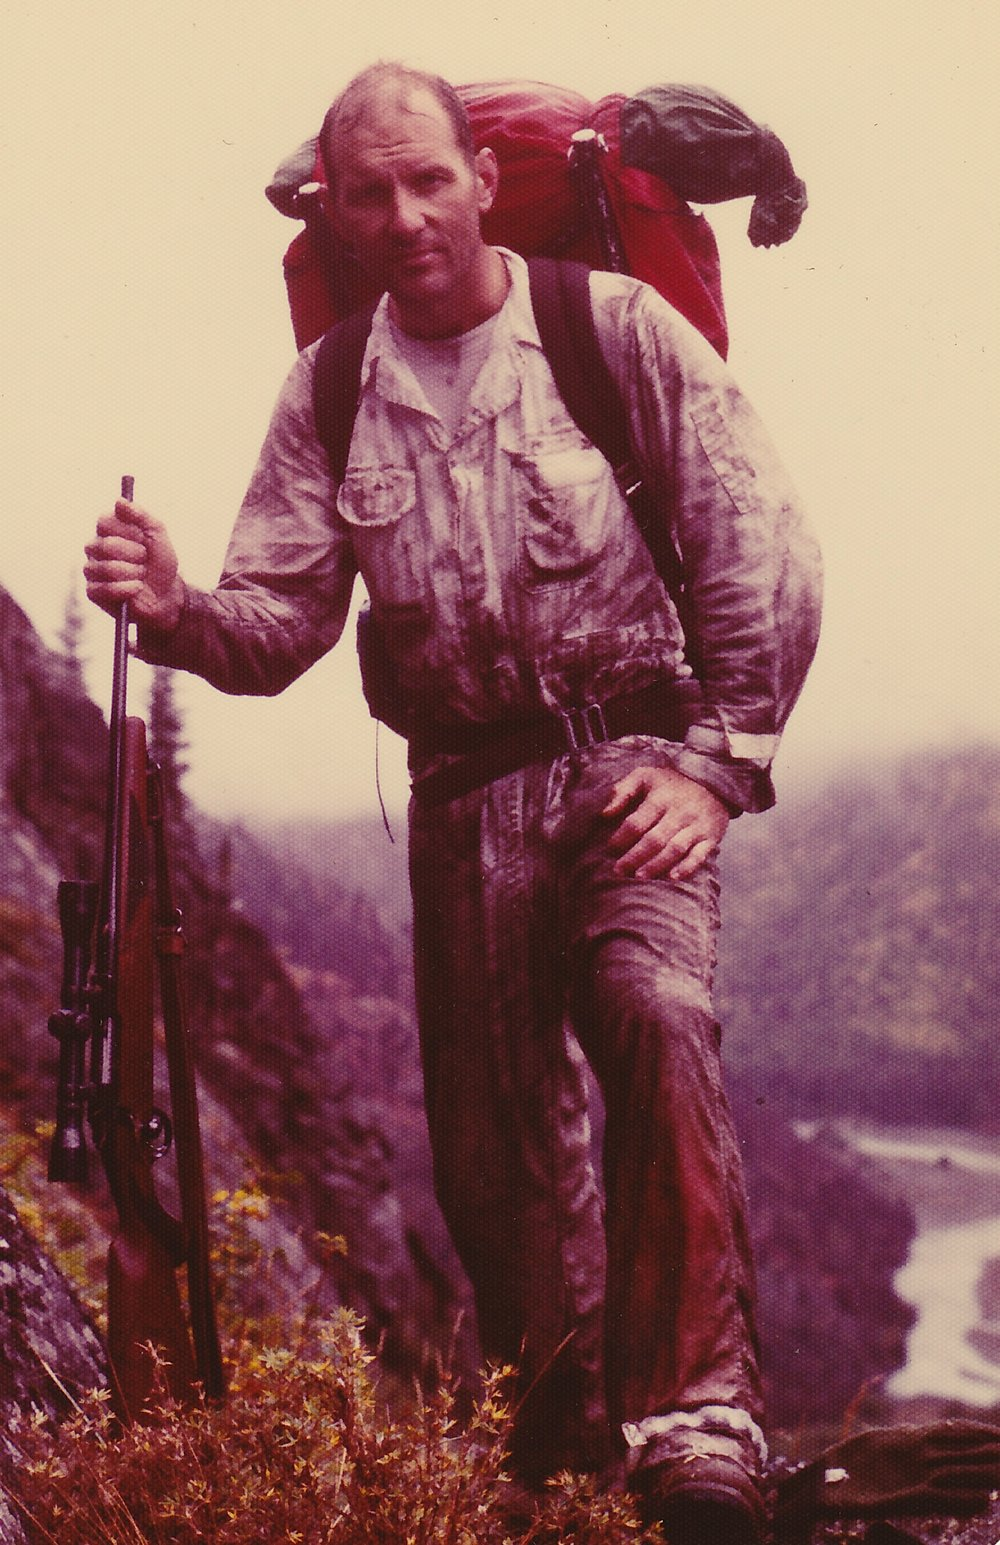 My commander, Lt. Col. Lyle Thompson, on his first sheep hunt looking tired, wet and beat up.